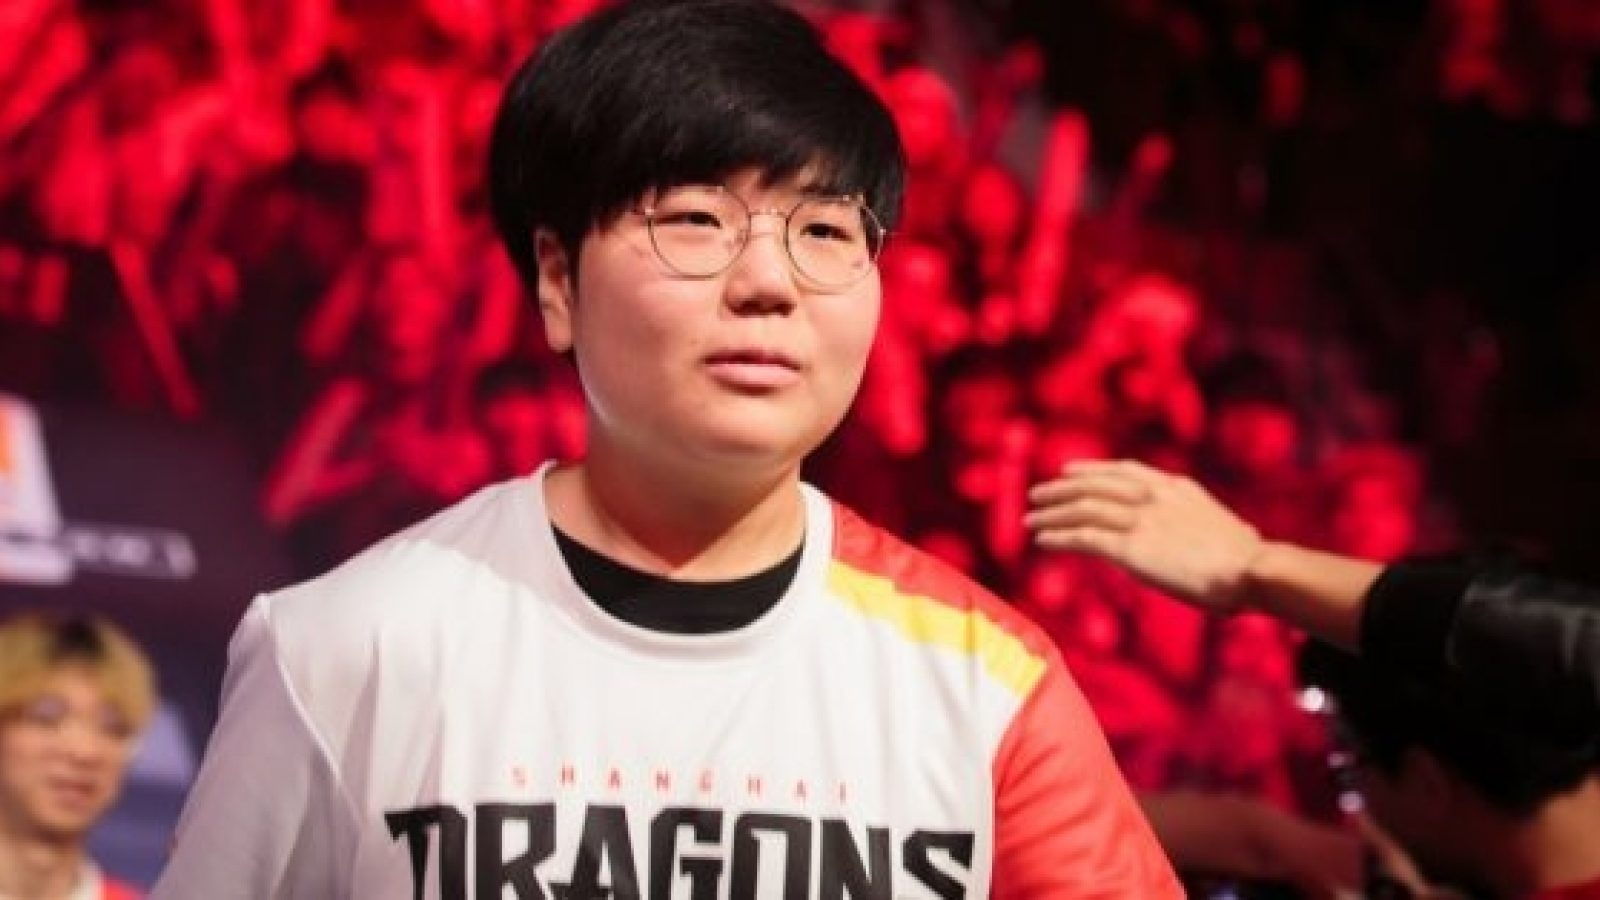 Geguri enters the Blizzard Arena as part of the Dragons roster